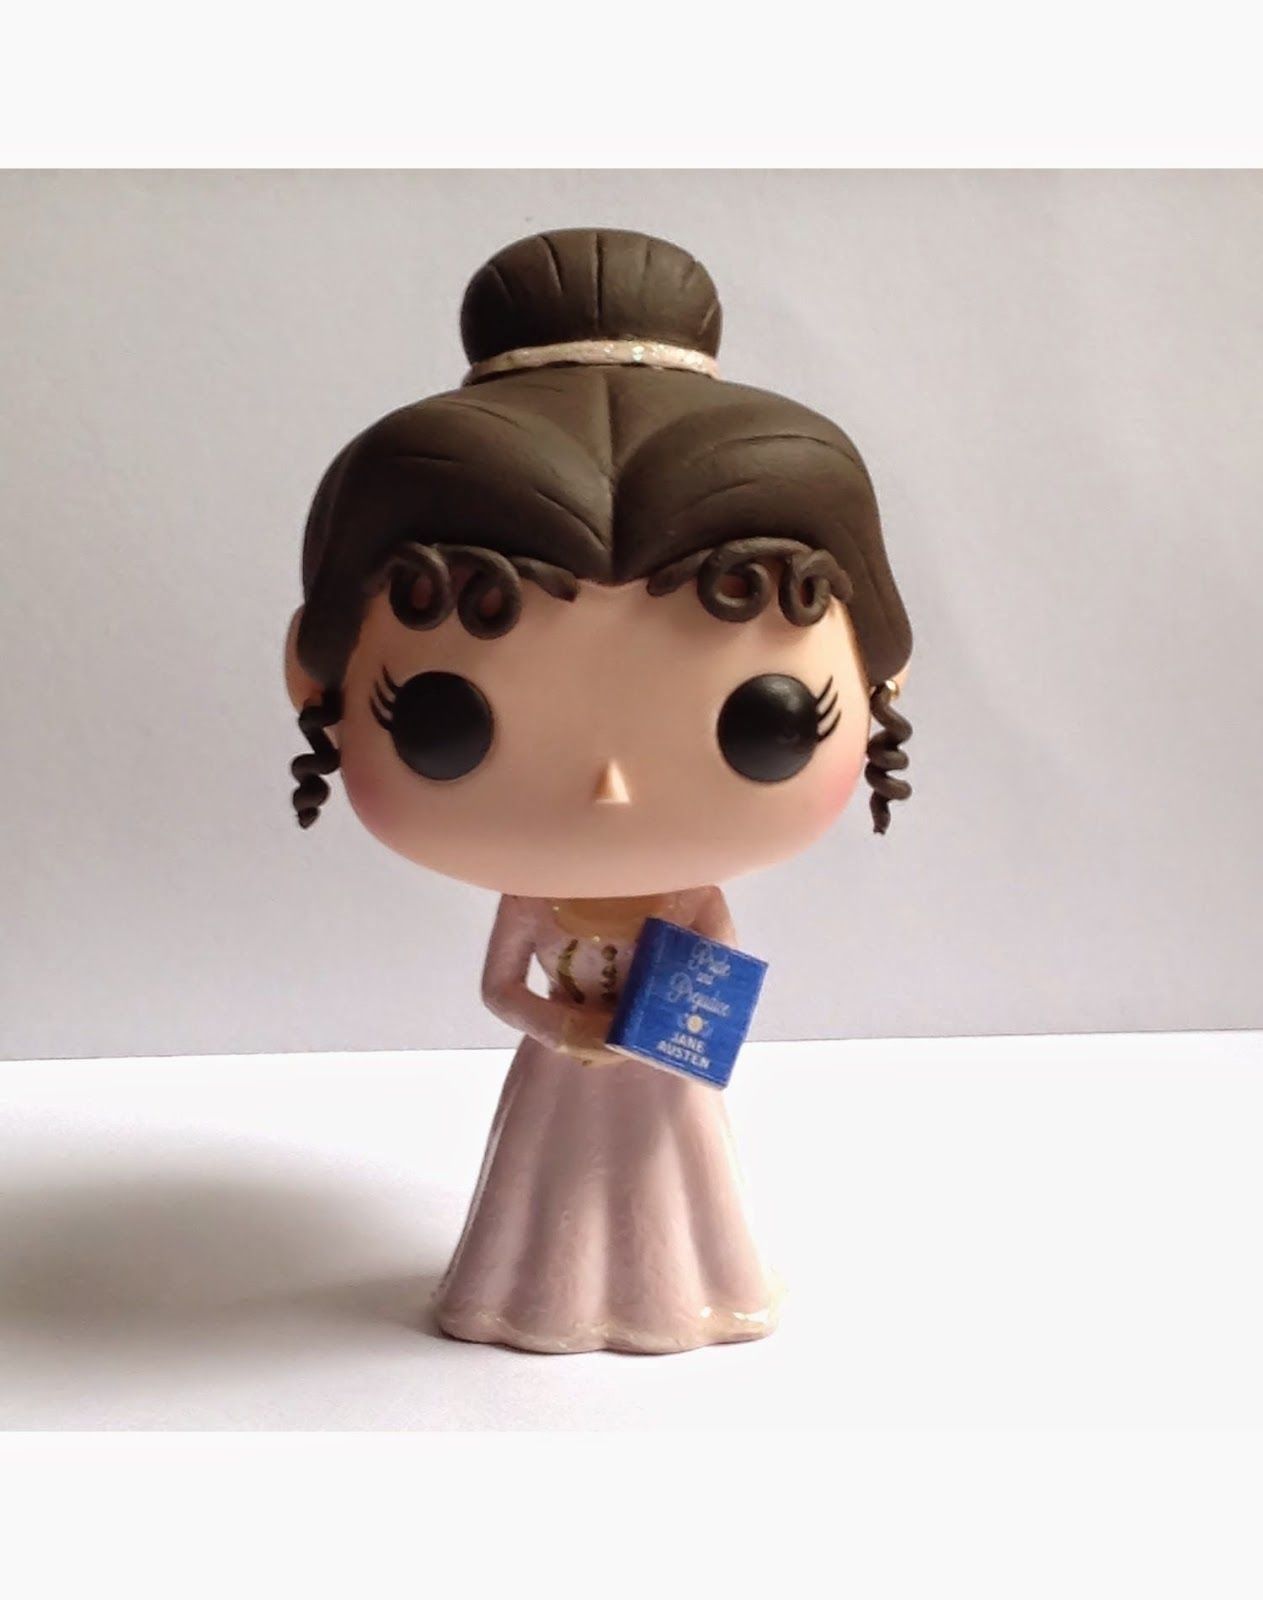 To Swoon Or Not To Swoon: Funko Pop: My 2nd Custom Pop I ...